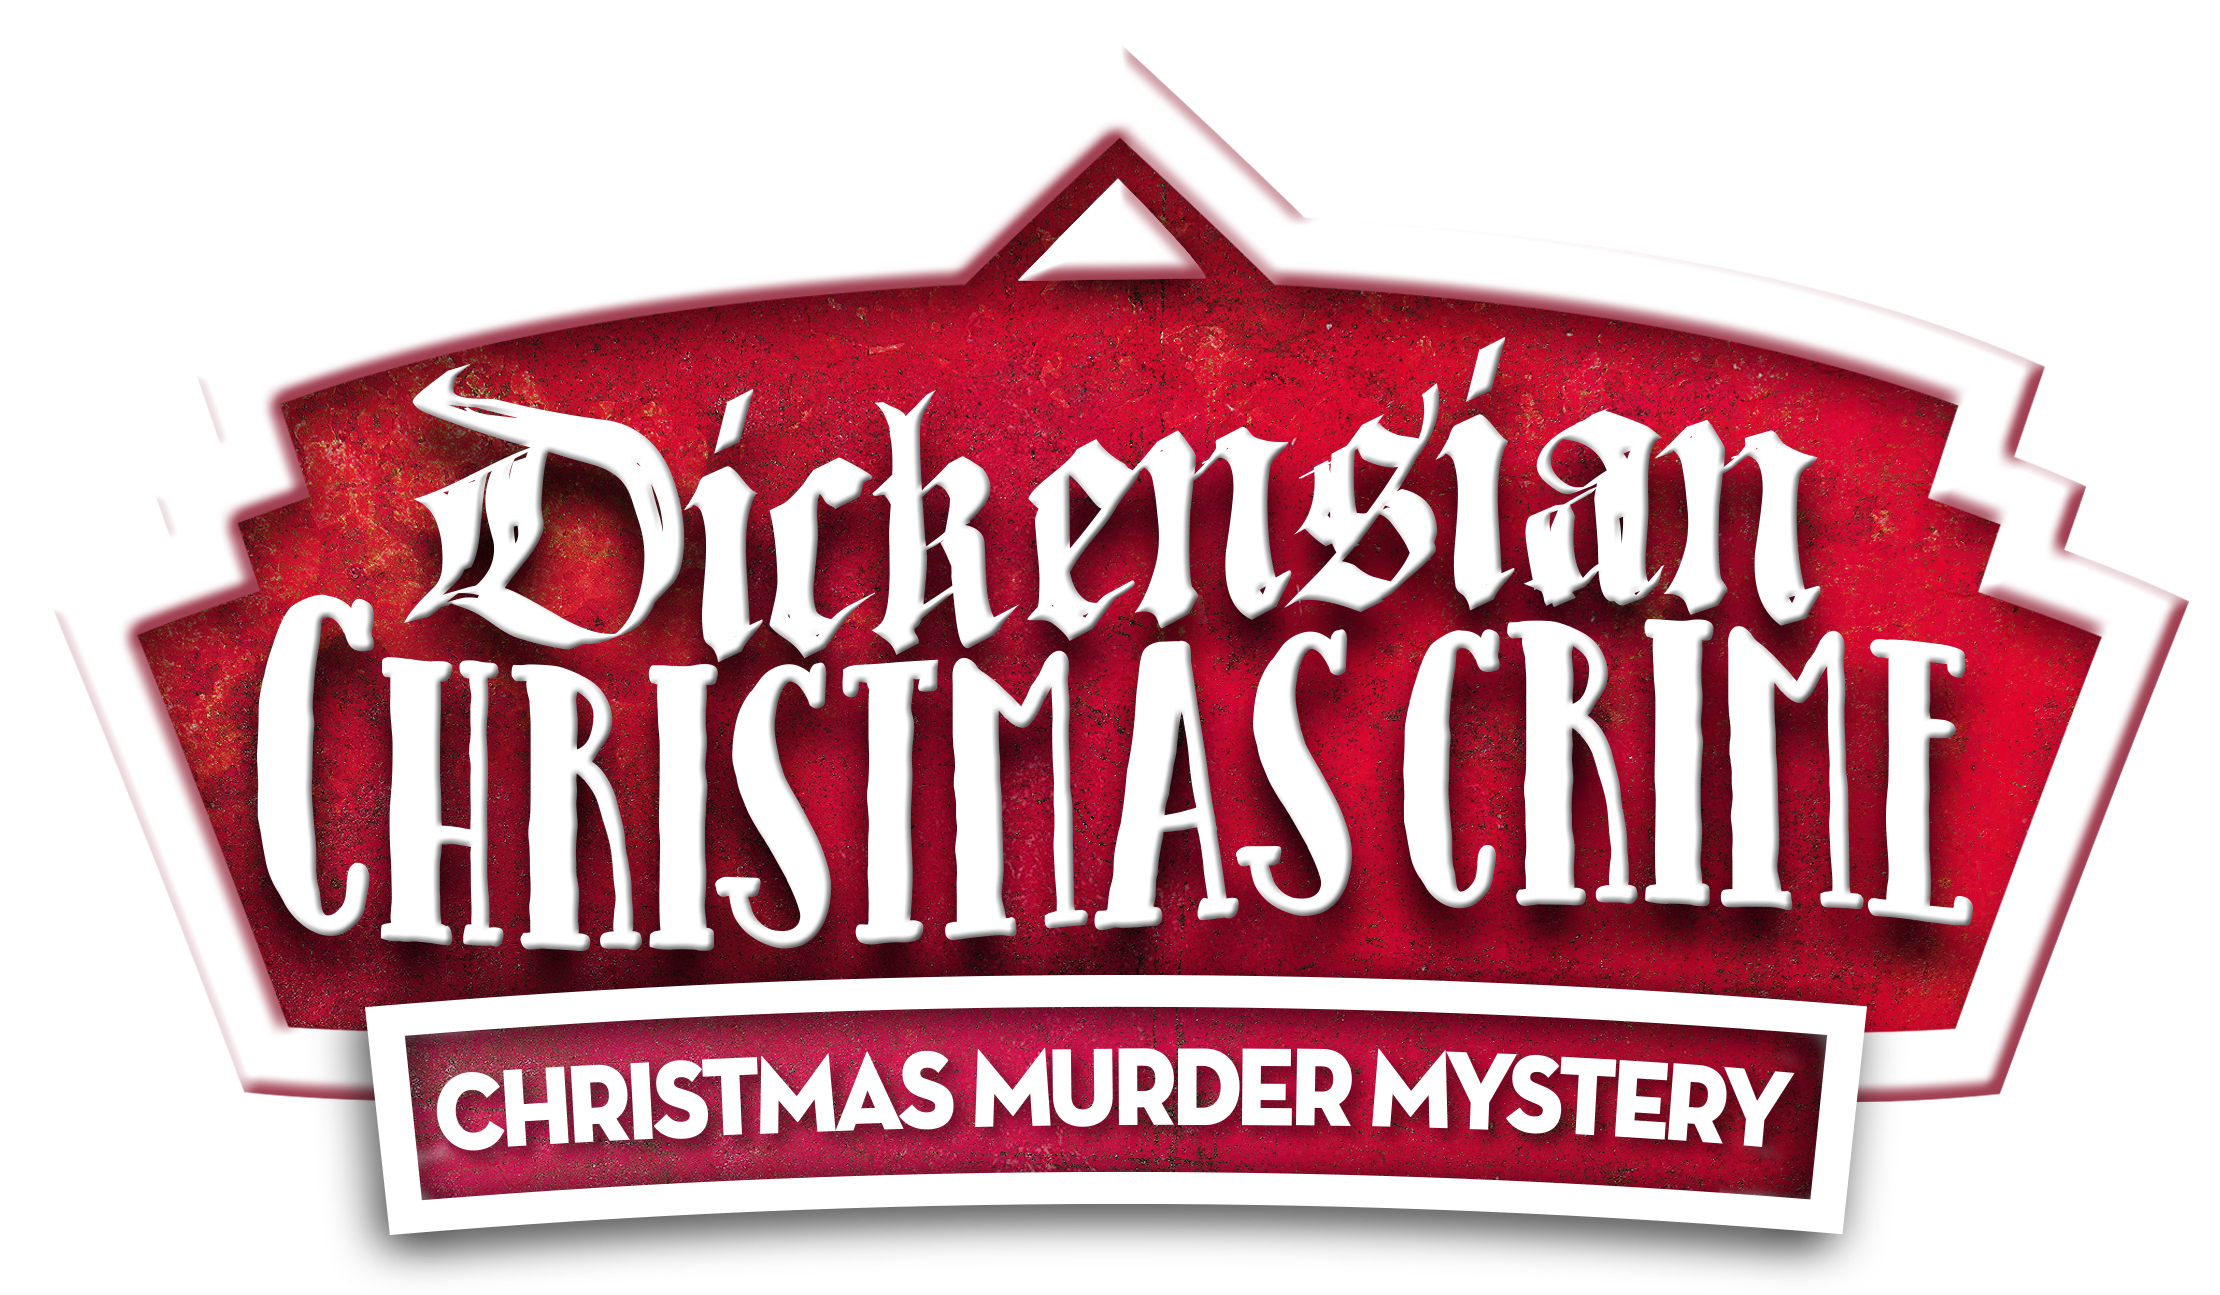 Crime clipart mystery number. Dickensian christmas murder holiday